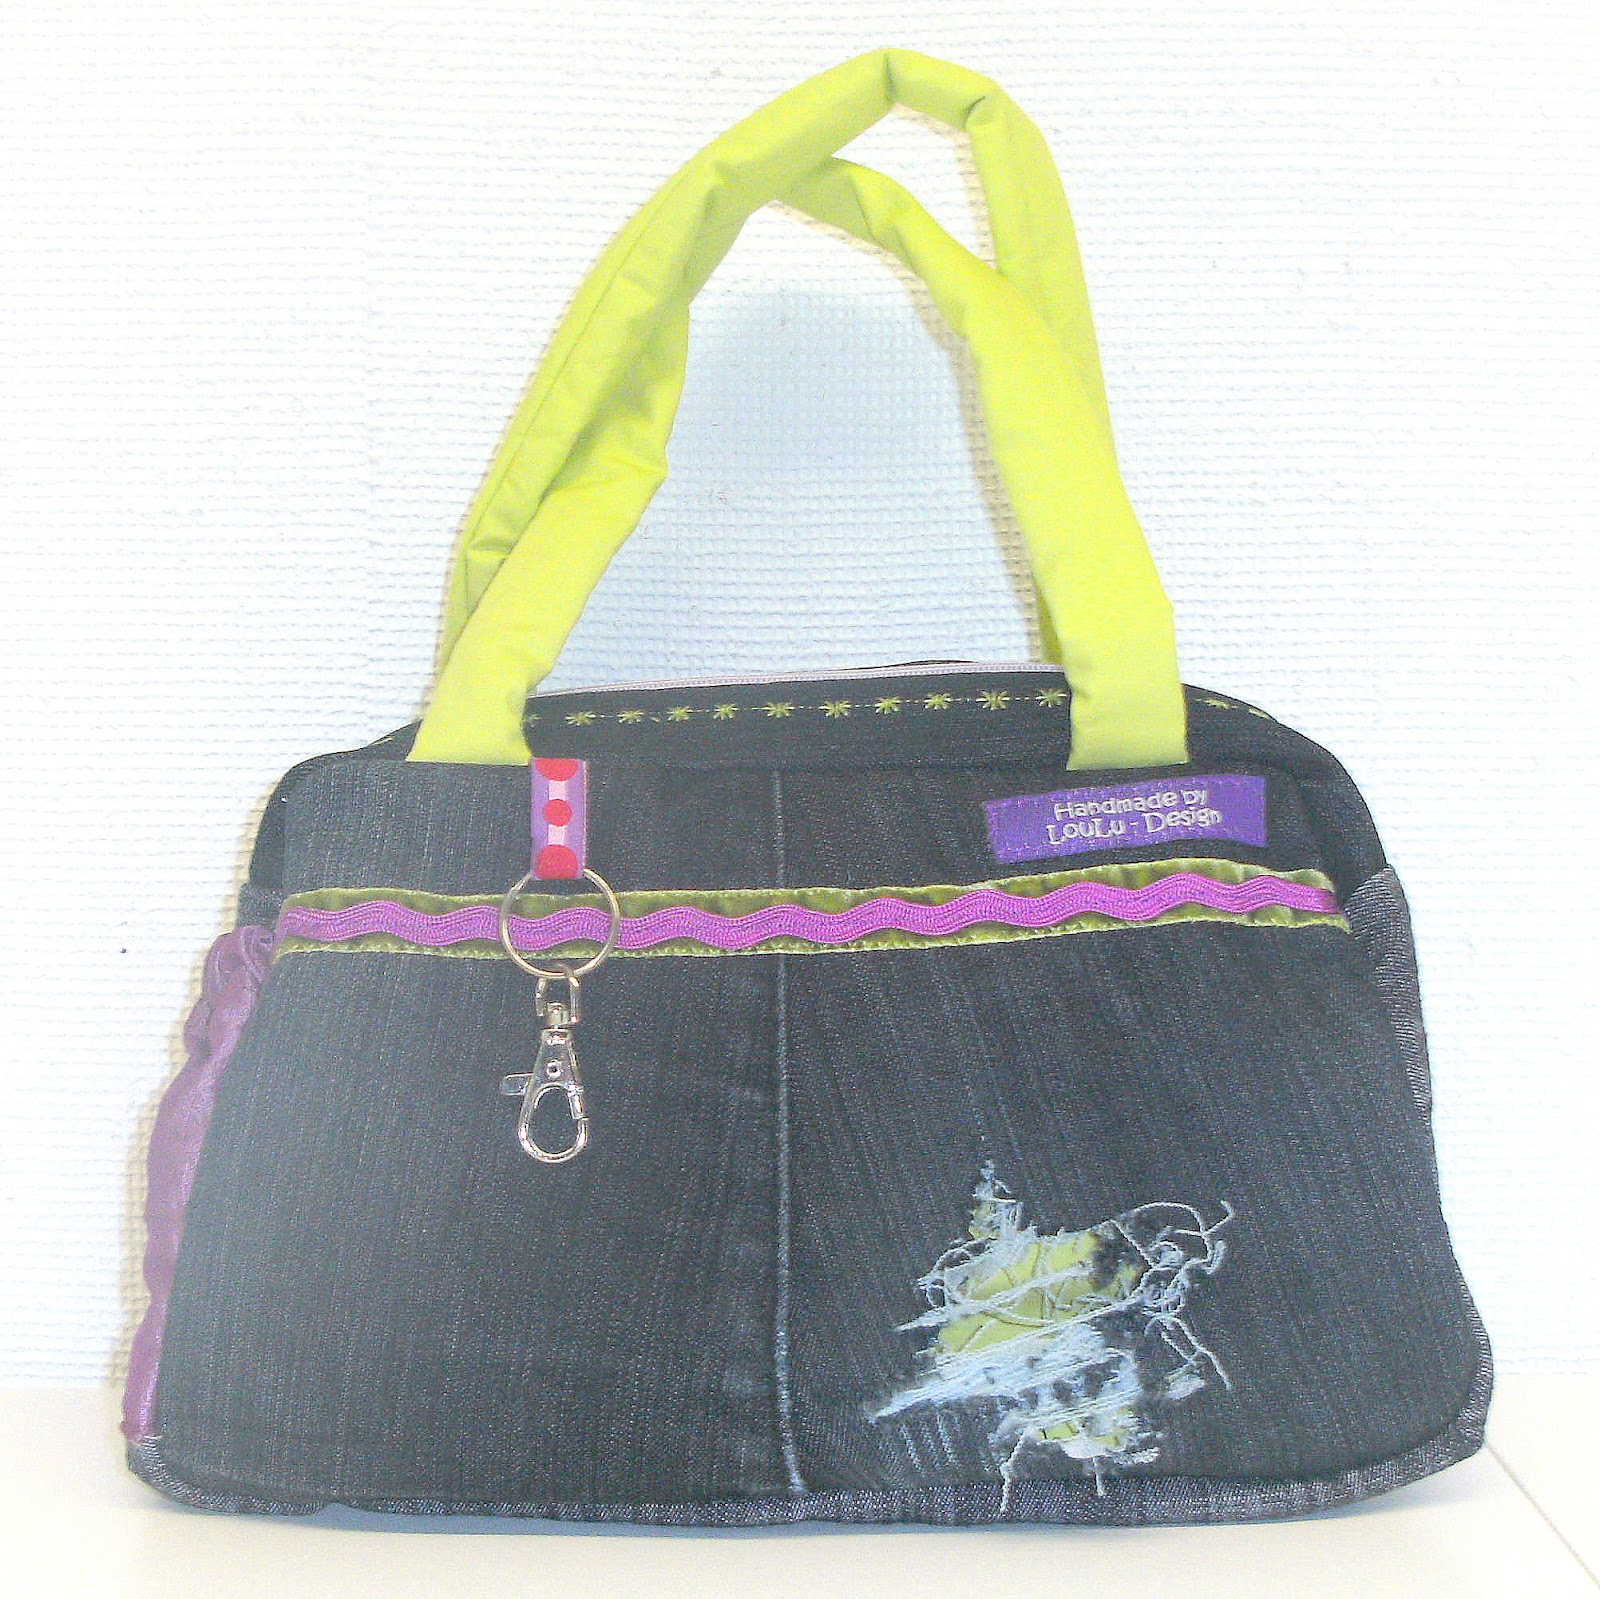 Tasche Recycling Tasche Recycling